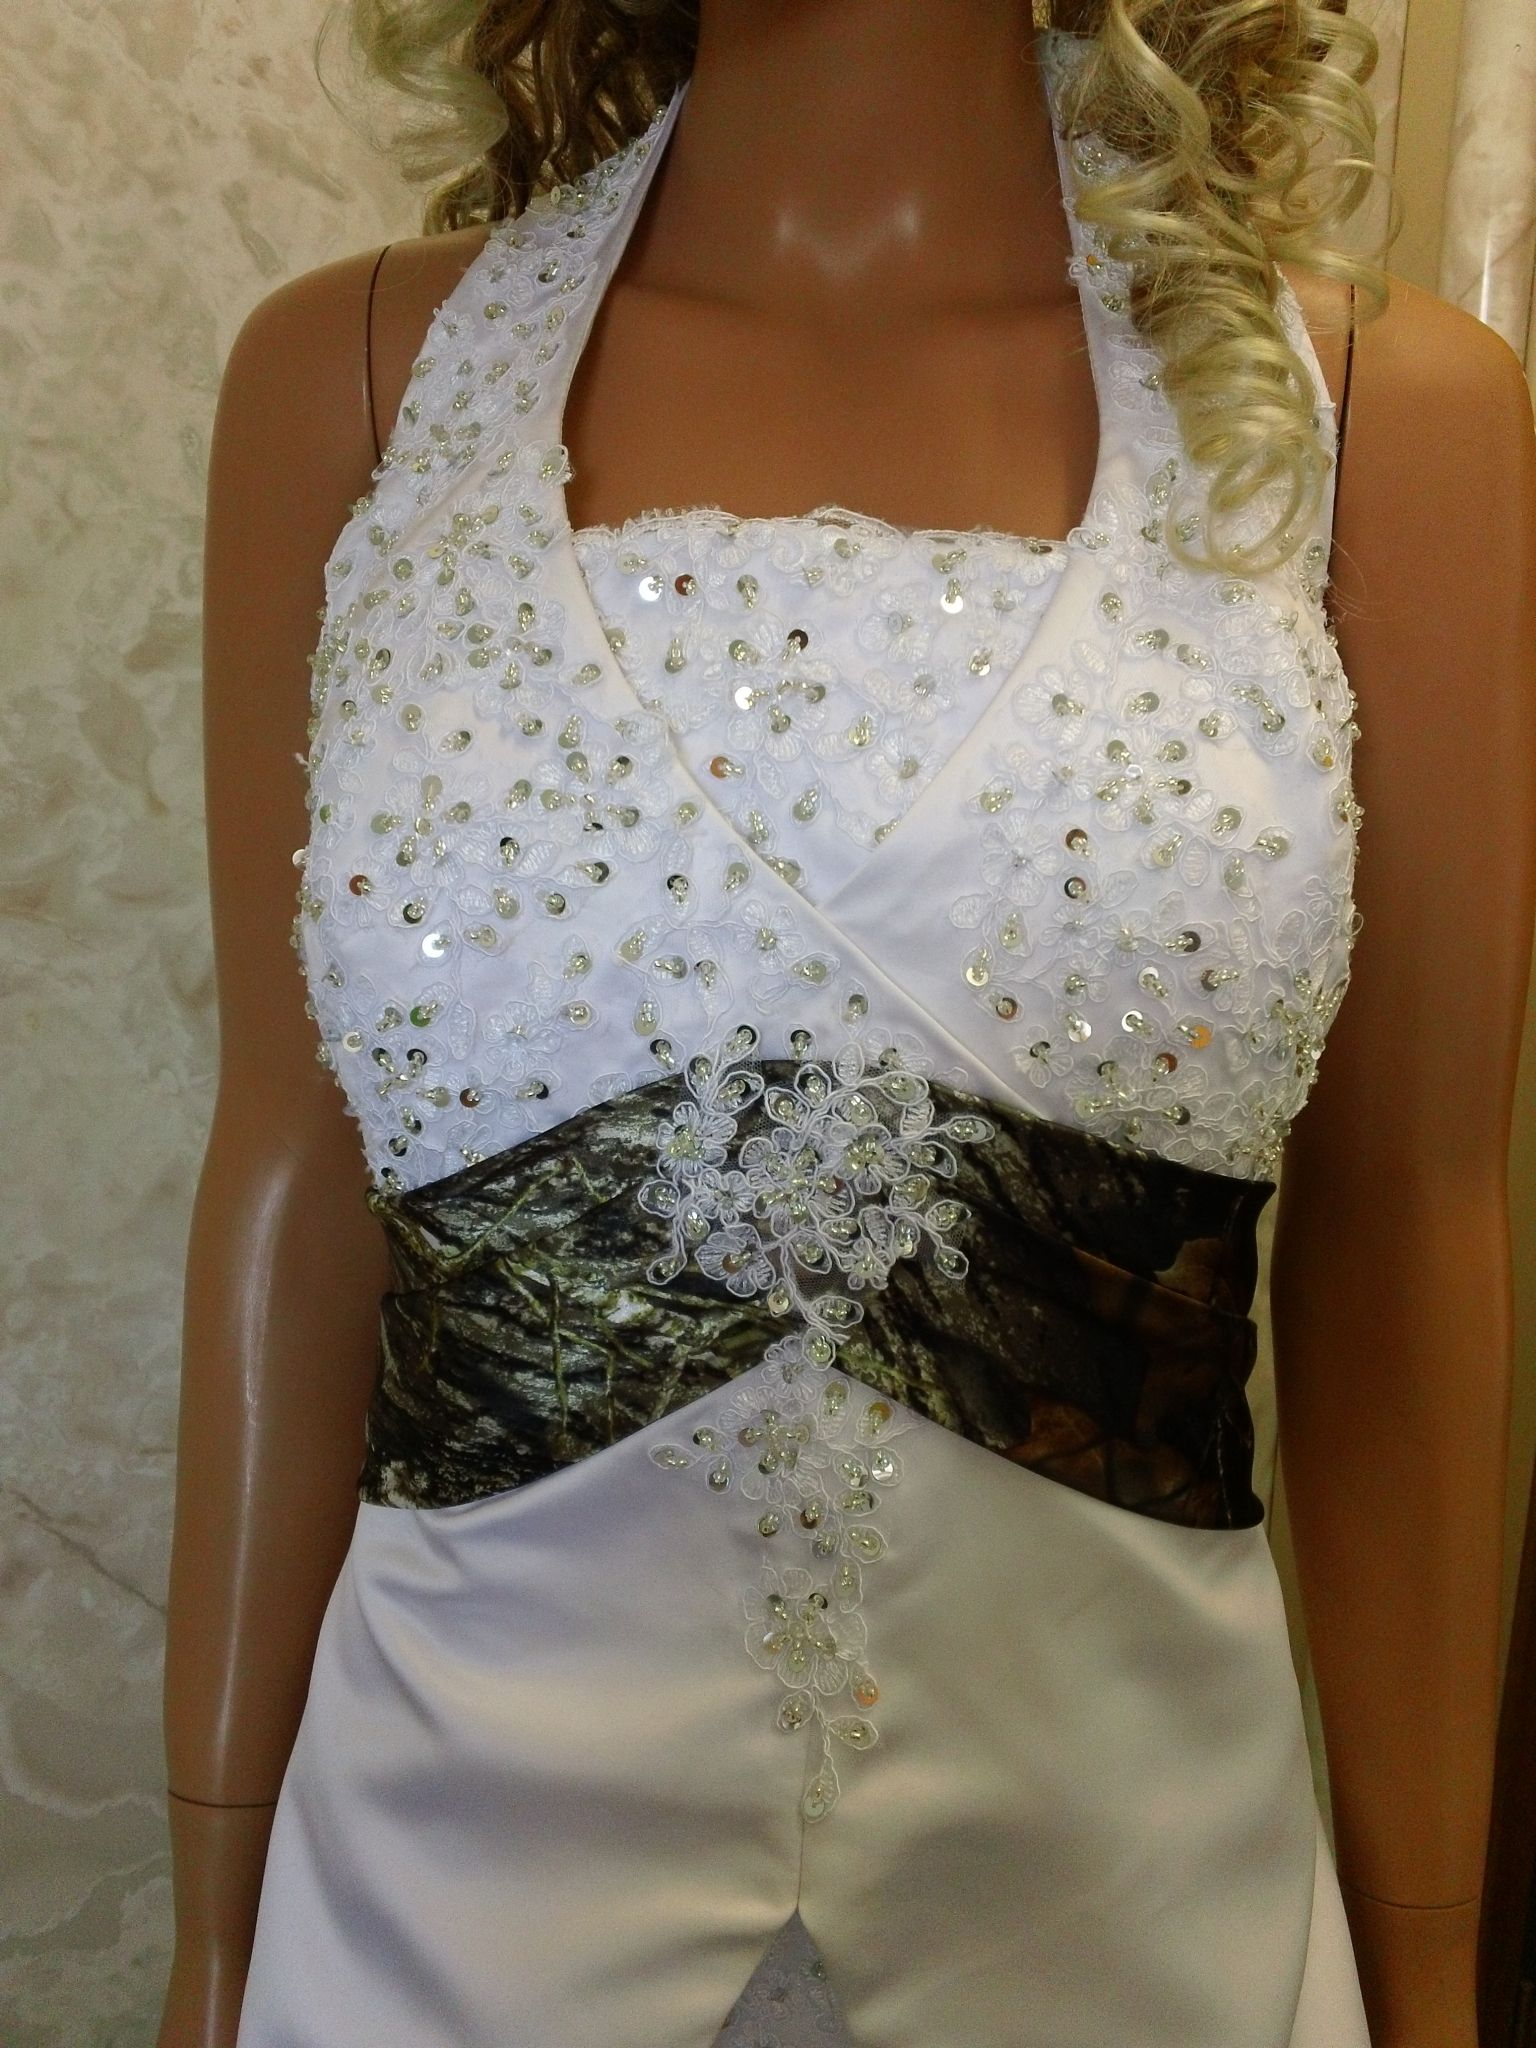 Realtree wedding dresses  a touch of camo wedding dresses  plus size dresses for wedding